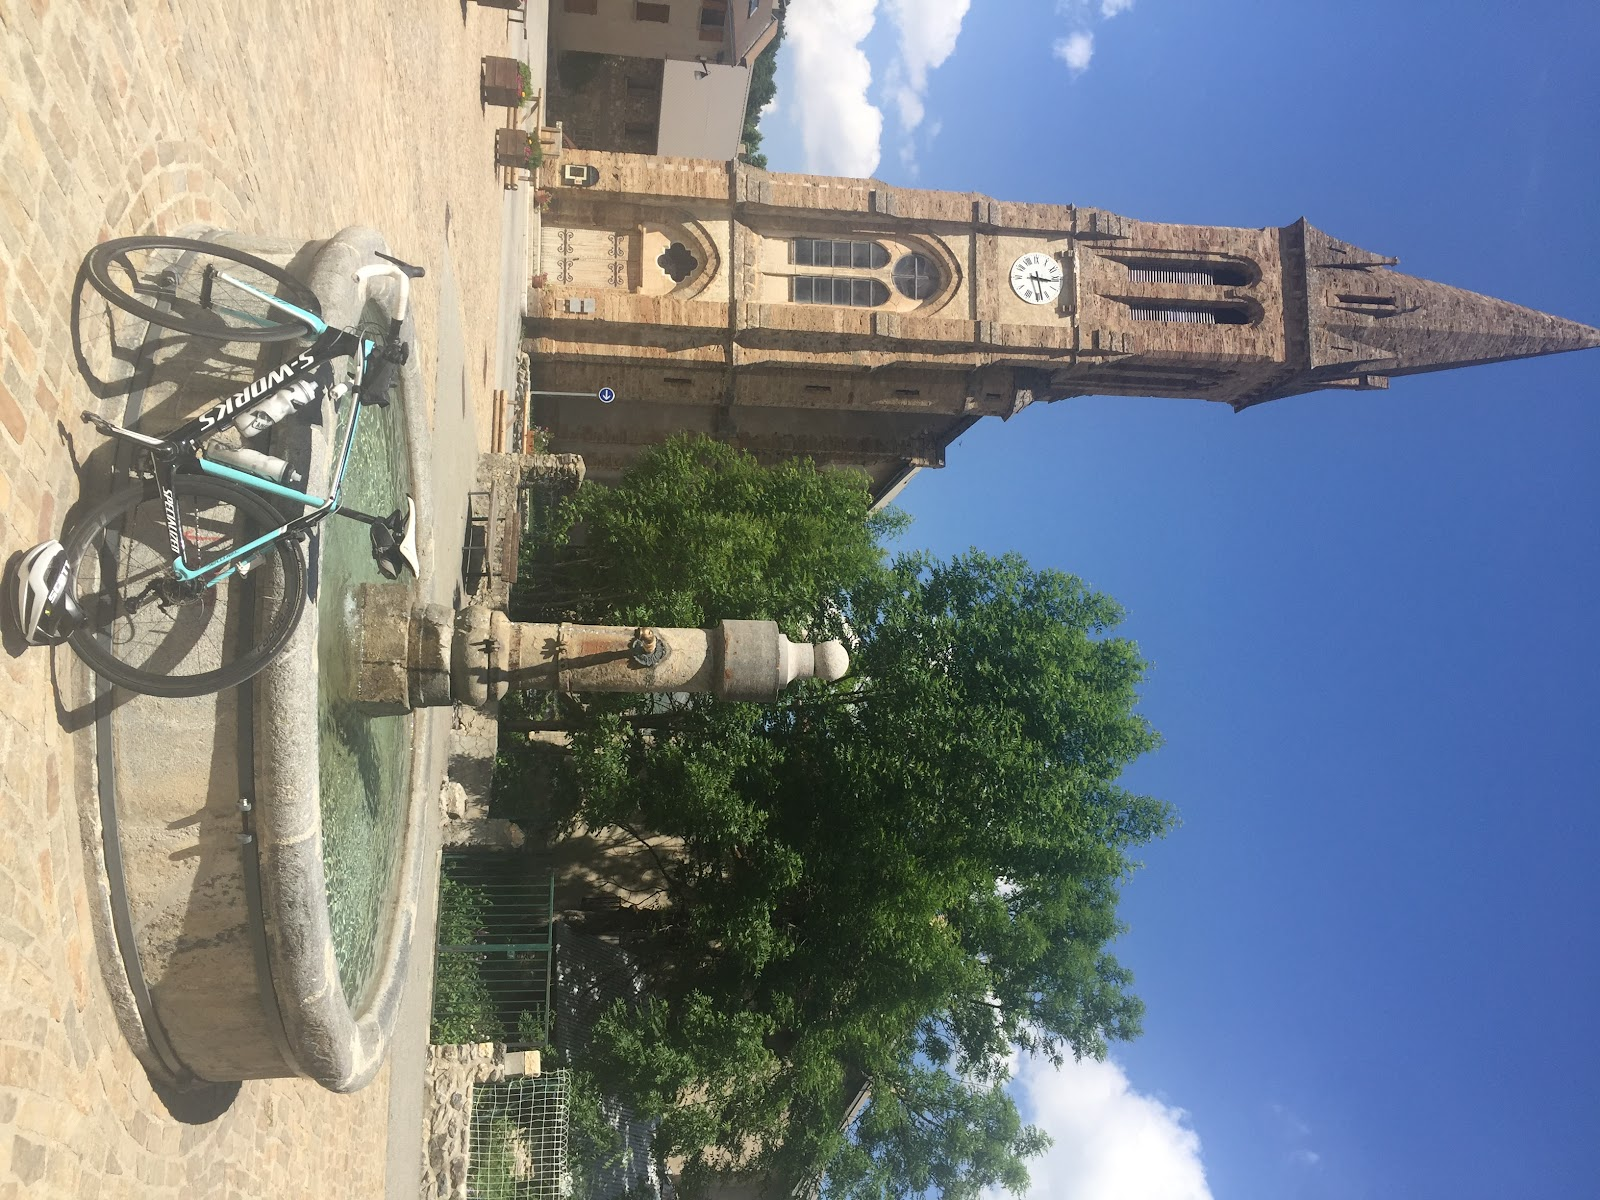 Cycling Col du Galibier from Villar-D'Arene - bike at fountain in square at Villar-D'Arene